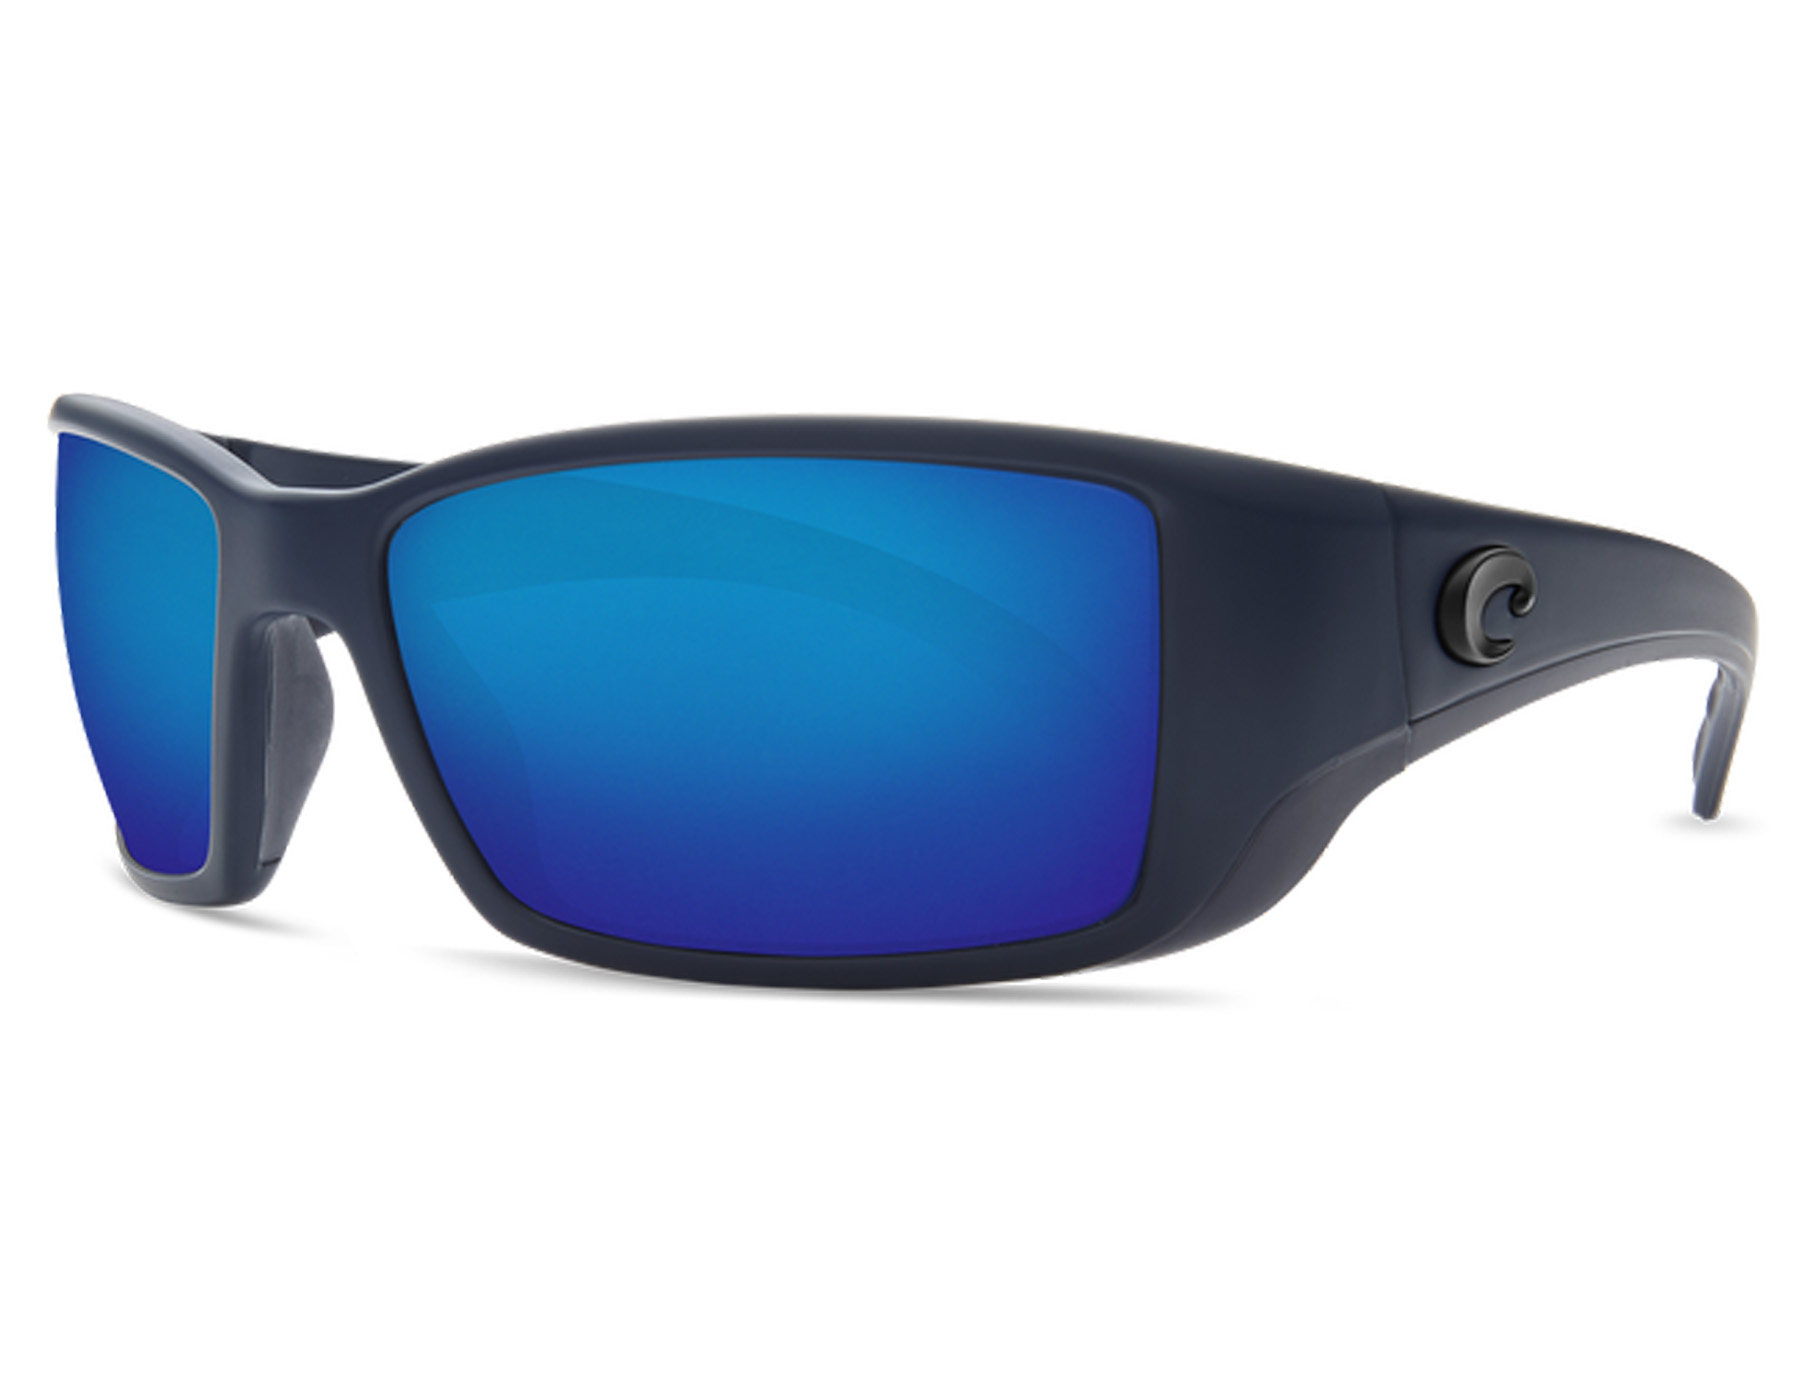 7c325524a84d0 Details about NEW Costa Del Mar Blackfin Midnight Blue   Blue BL14 OBMGLP  580G Sunglasses